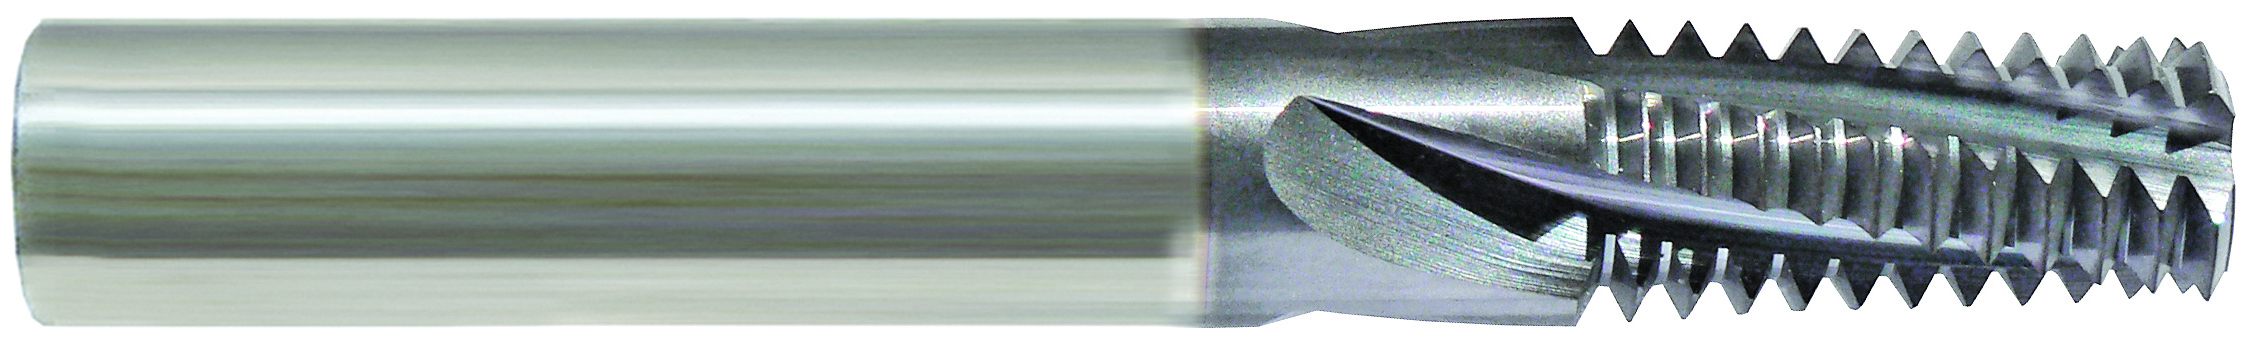 M10-1.50 MC SOLID CARBIDE THREAD MILL